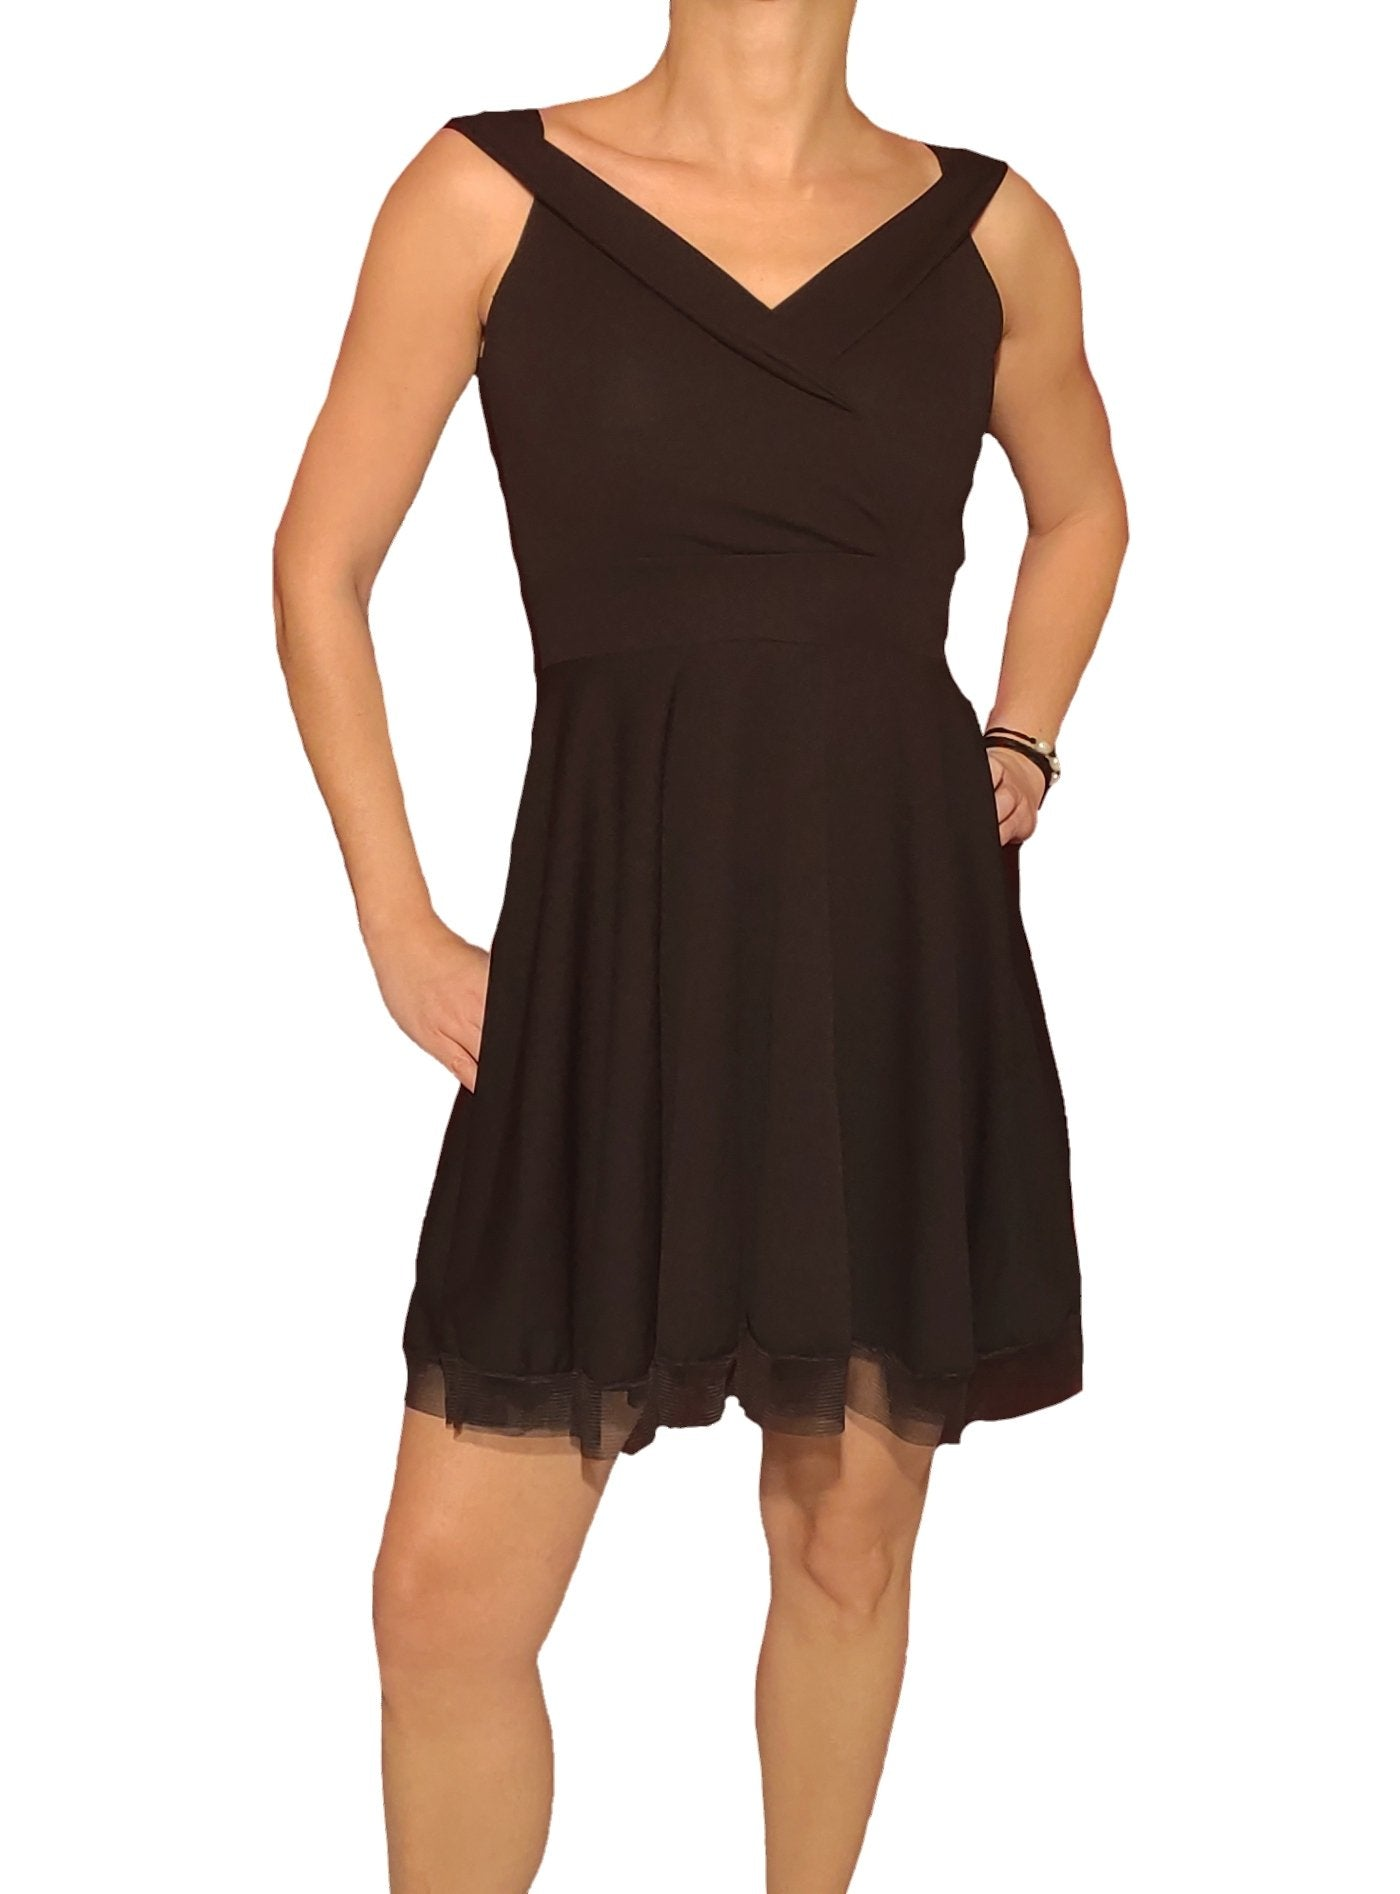 a-woman-wears-a-mini-black-cruaze-dress-with-tul-frontside